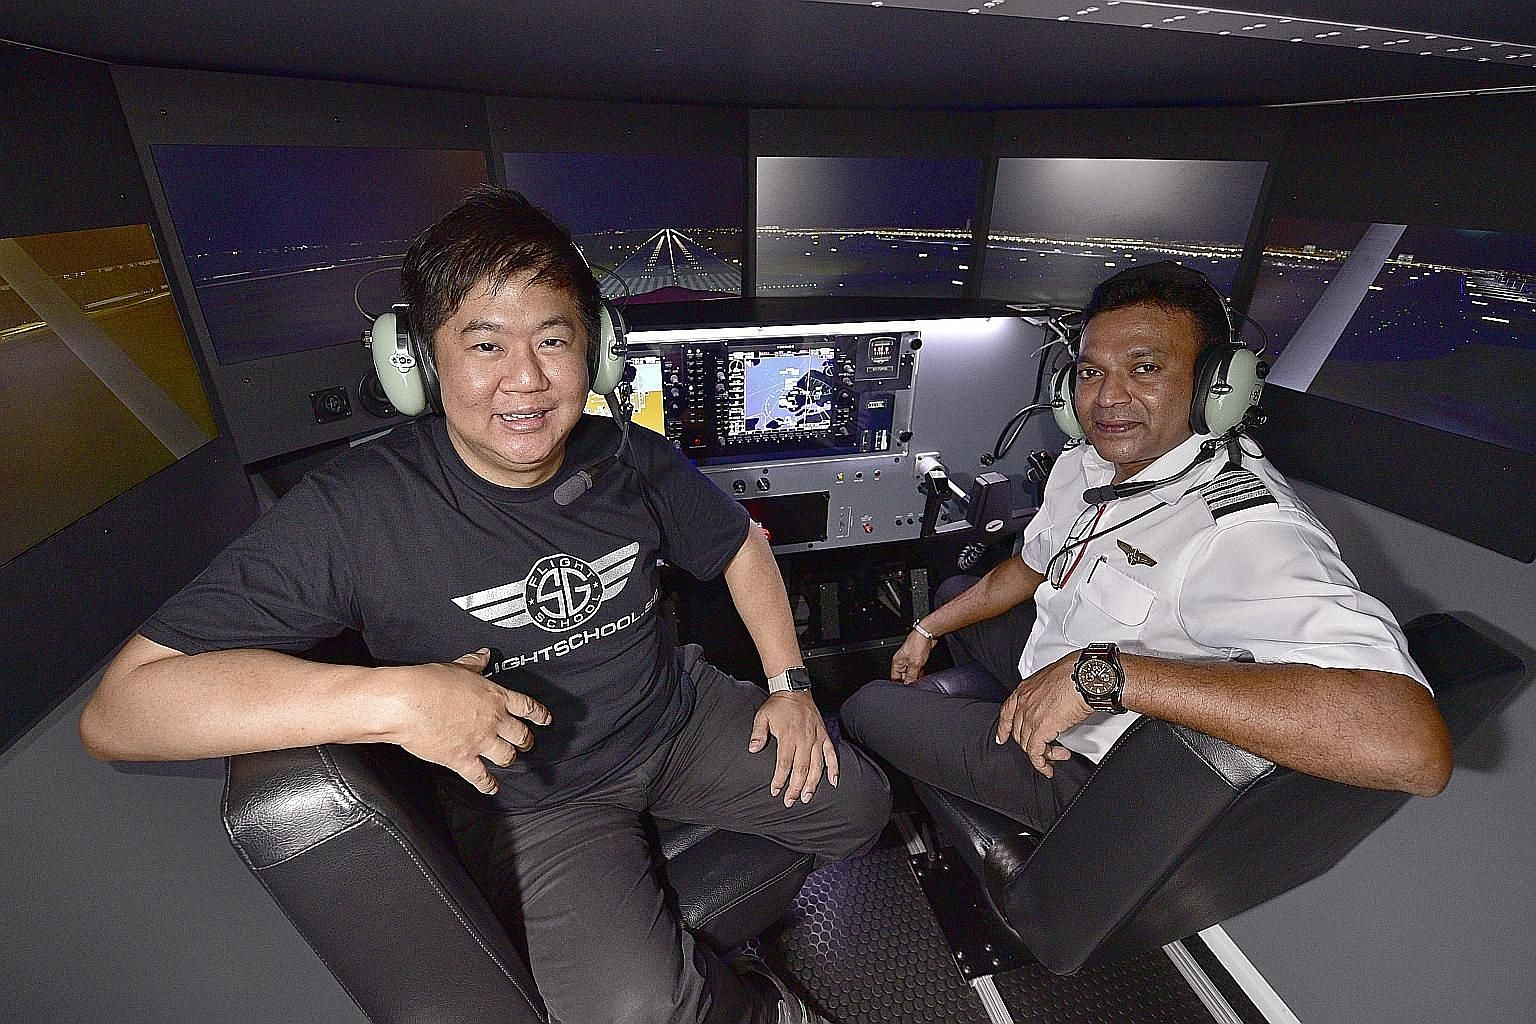 Members of Singapore Youth Flying Club on a navigation trip to Malacca. Mr Fabian Lim (far left), co-founder of FlightSchool. sg, which uses a flight simulator to conduct flight training. He is with Captain Saravanan Sukomaran, an instructor at the s